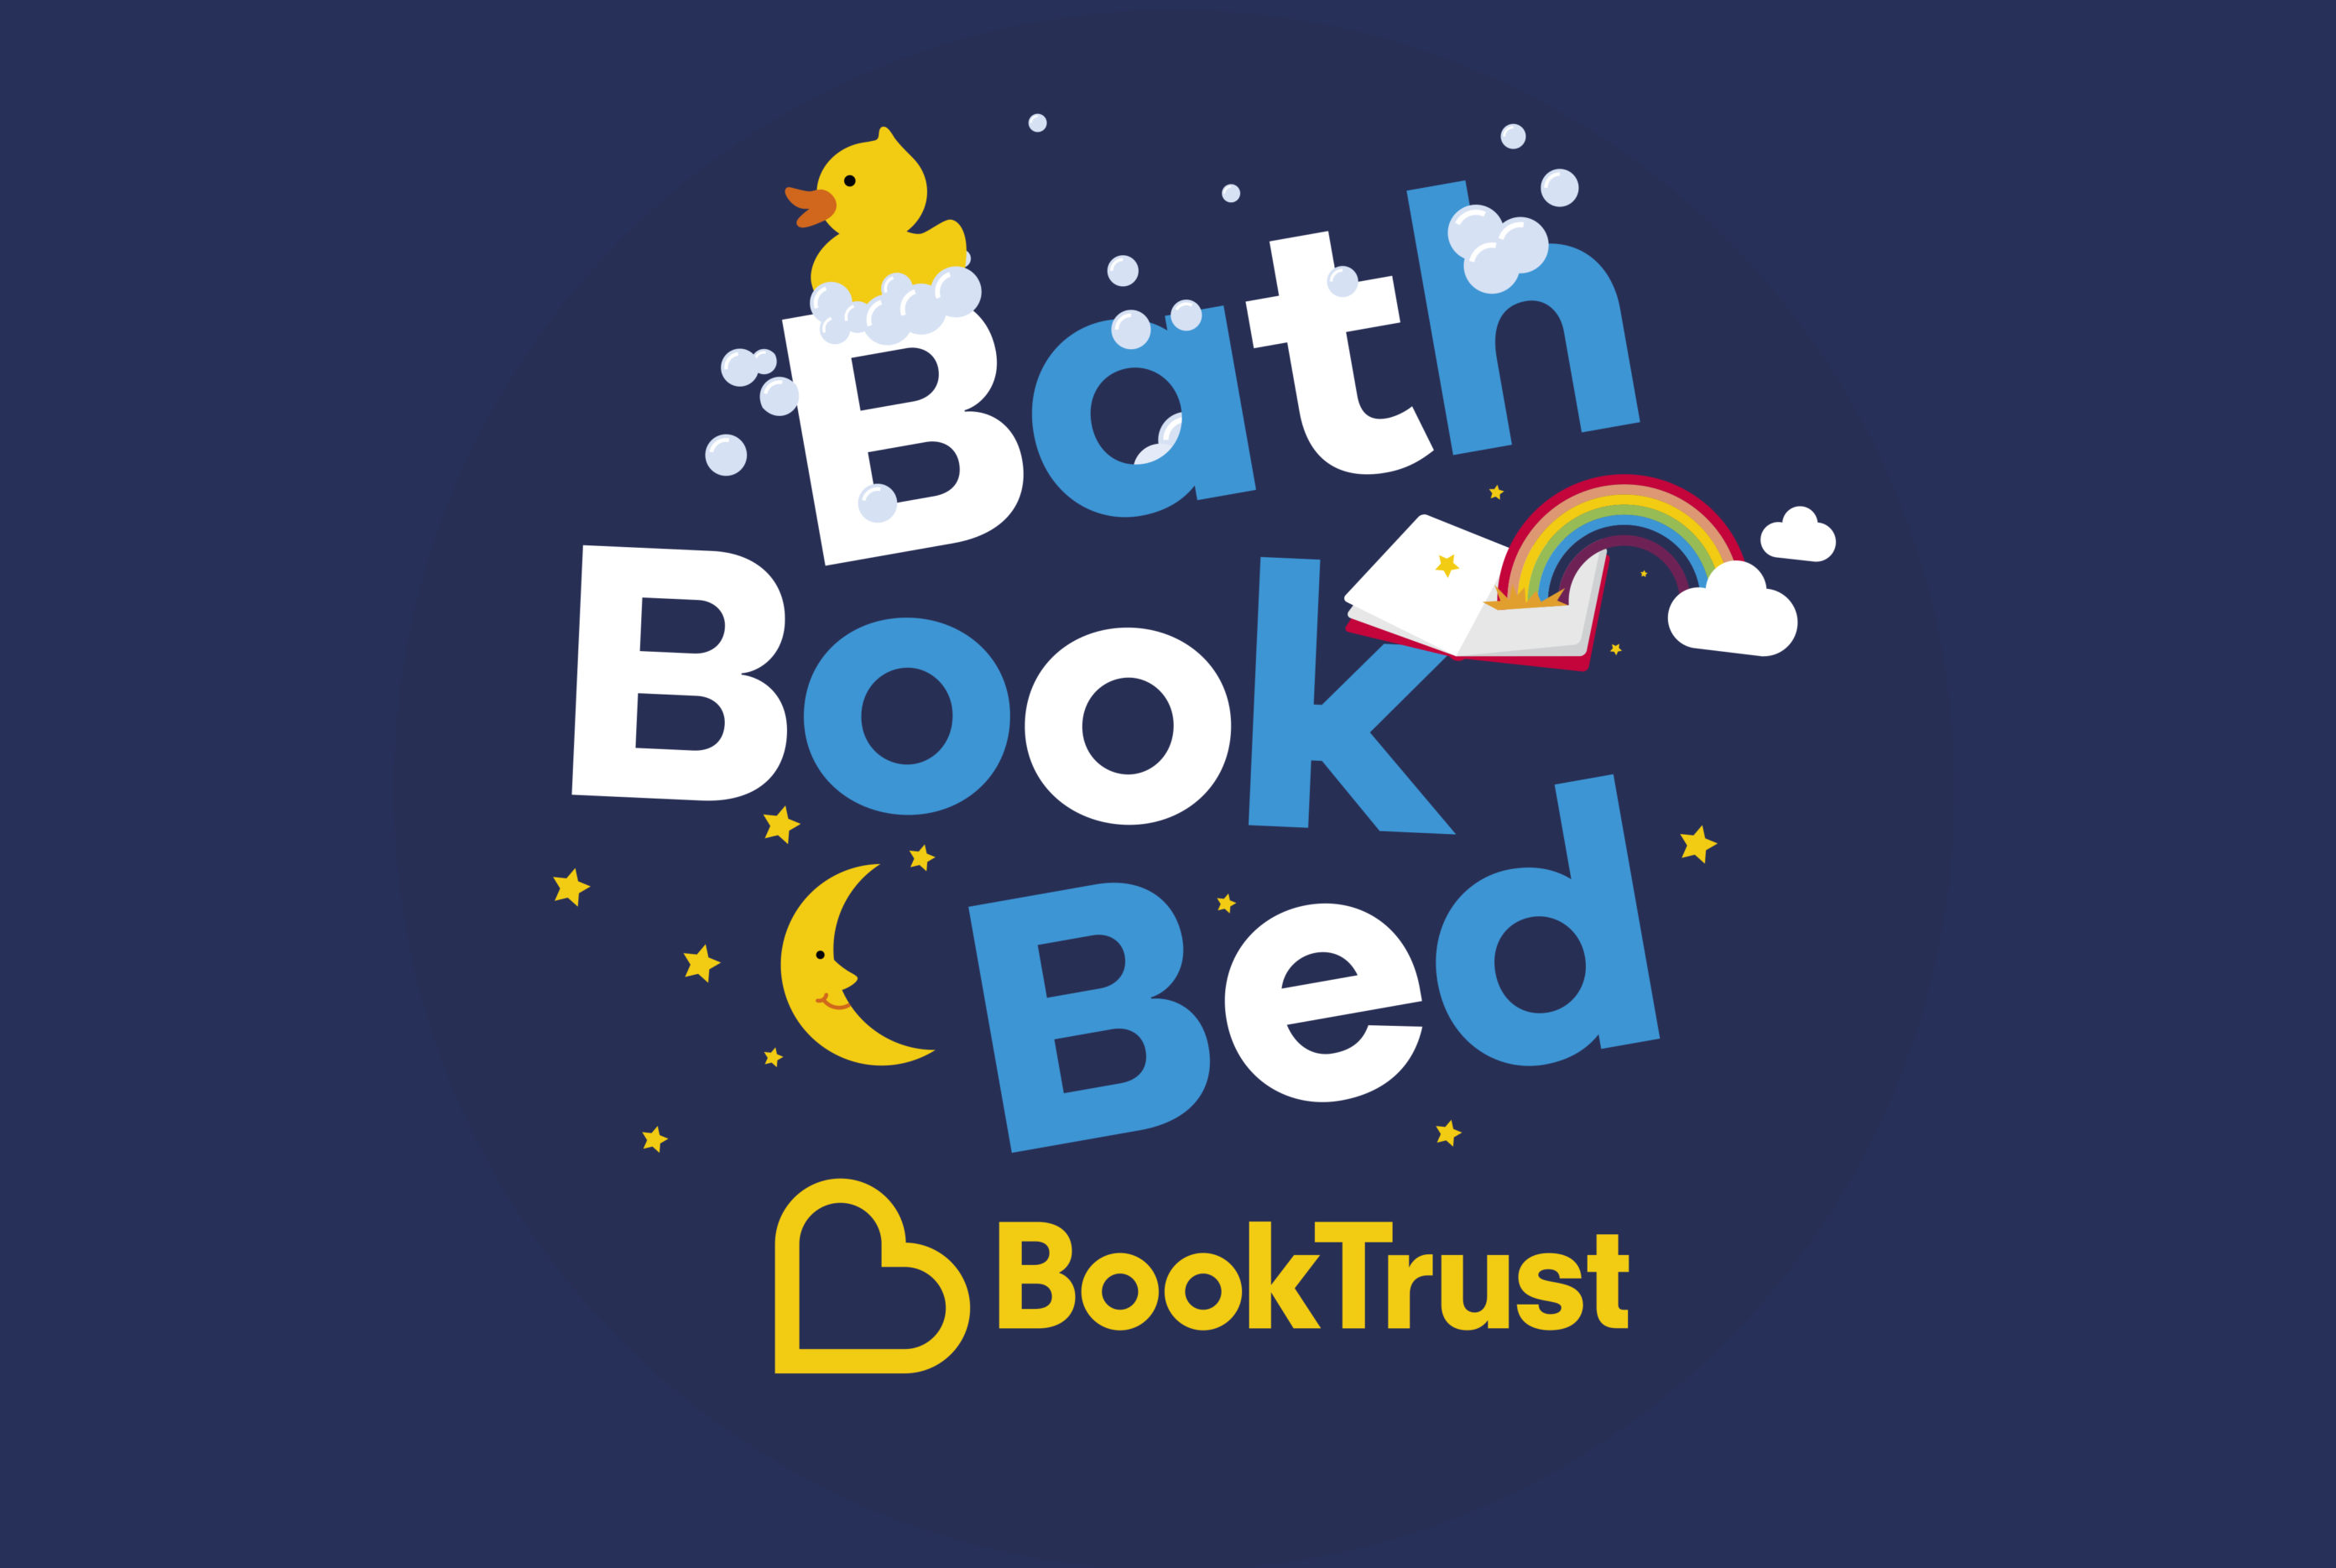 Book Trust Bath Book Bed Identity Large Image 1400x940 1